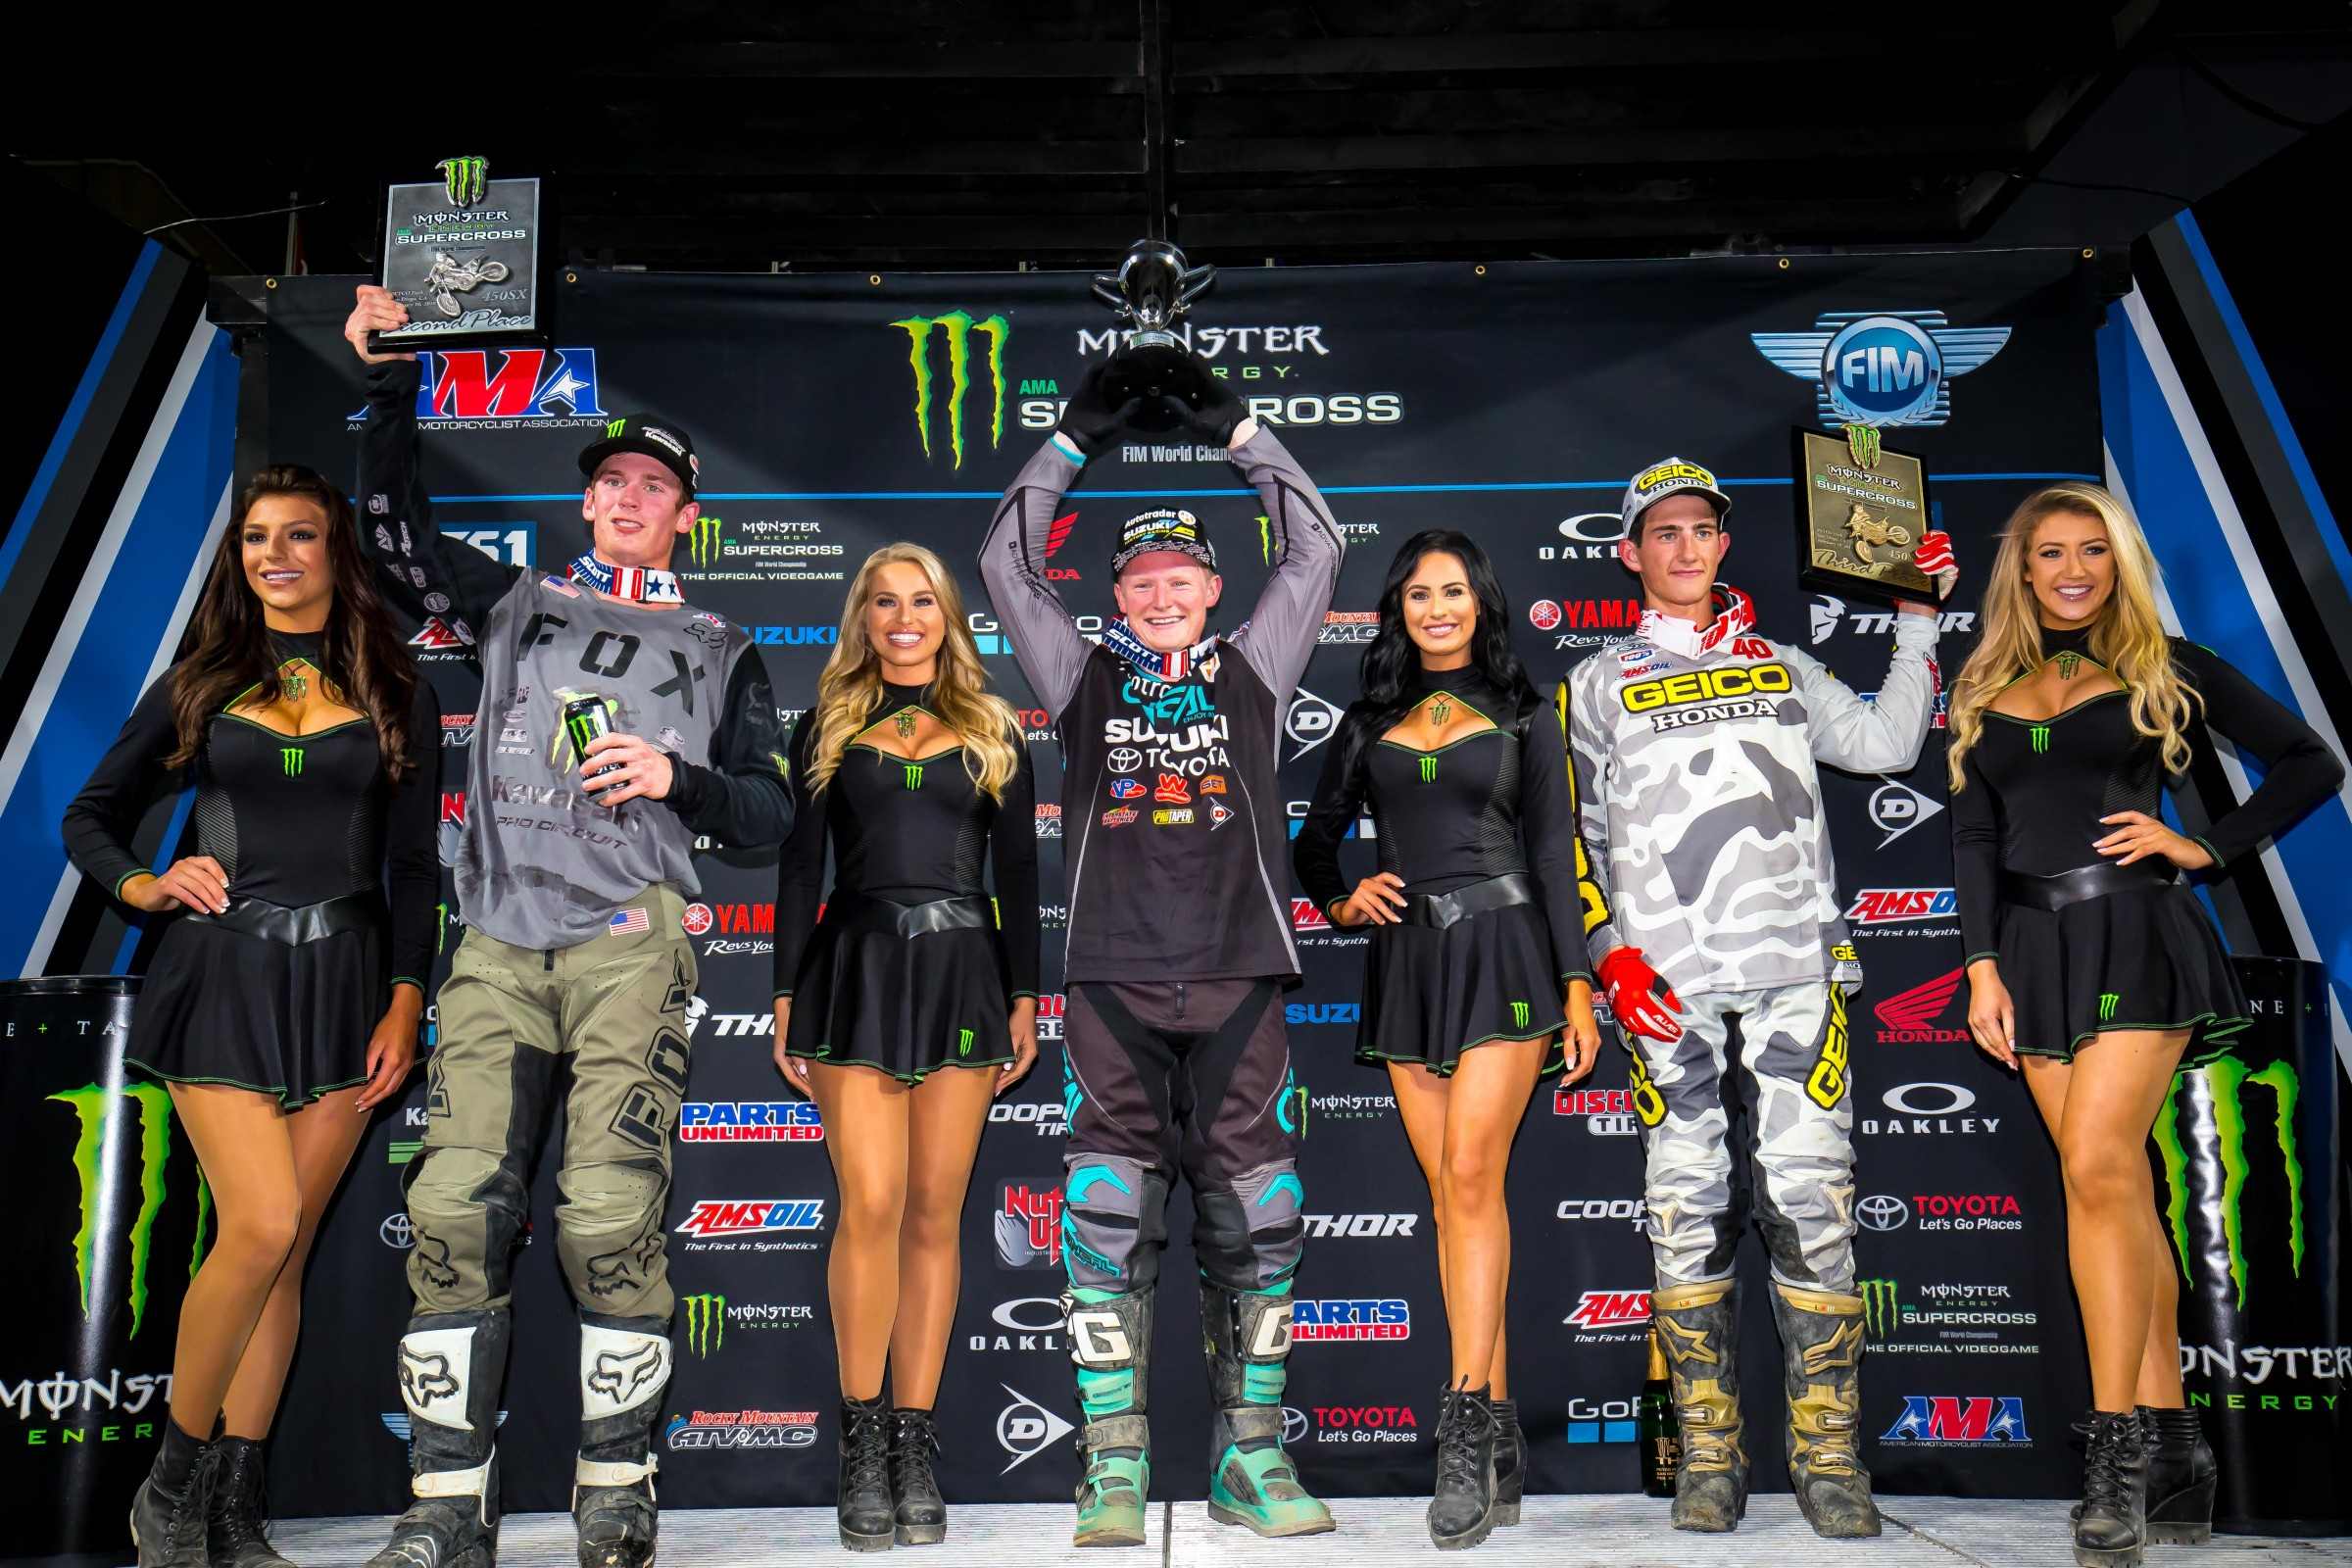 Adam Cianciarulo led a bunch of laps, Hill took his first win of the season, and rookie Chase Sexton earned his second career supercross podium.